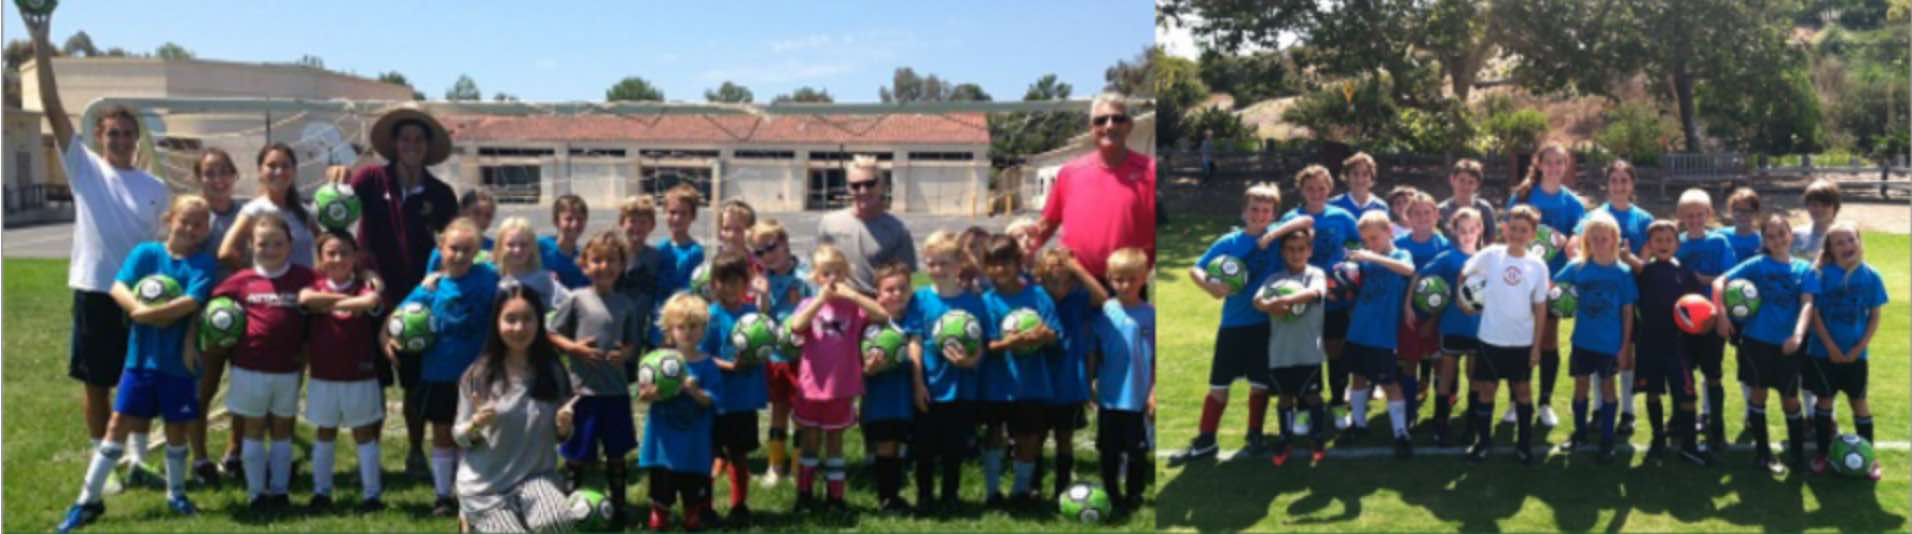 Calling All Soccer Players – 2015 Summer Camps are here!